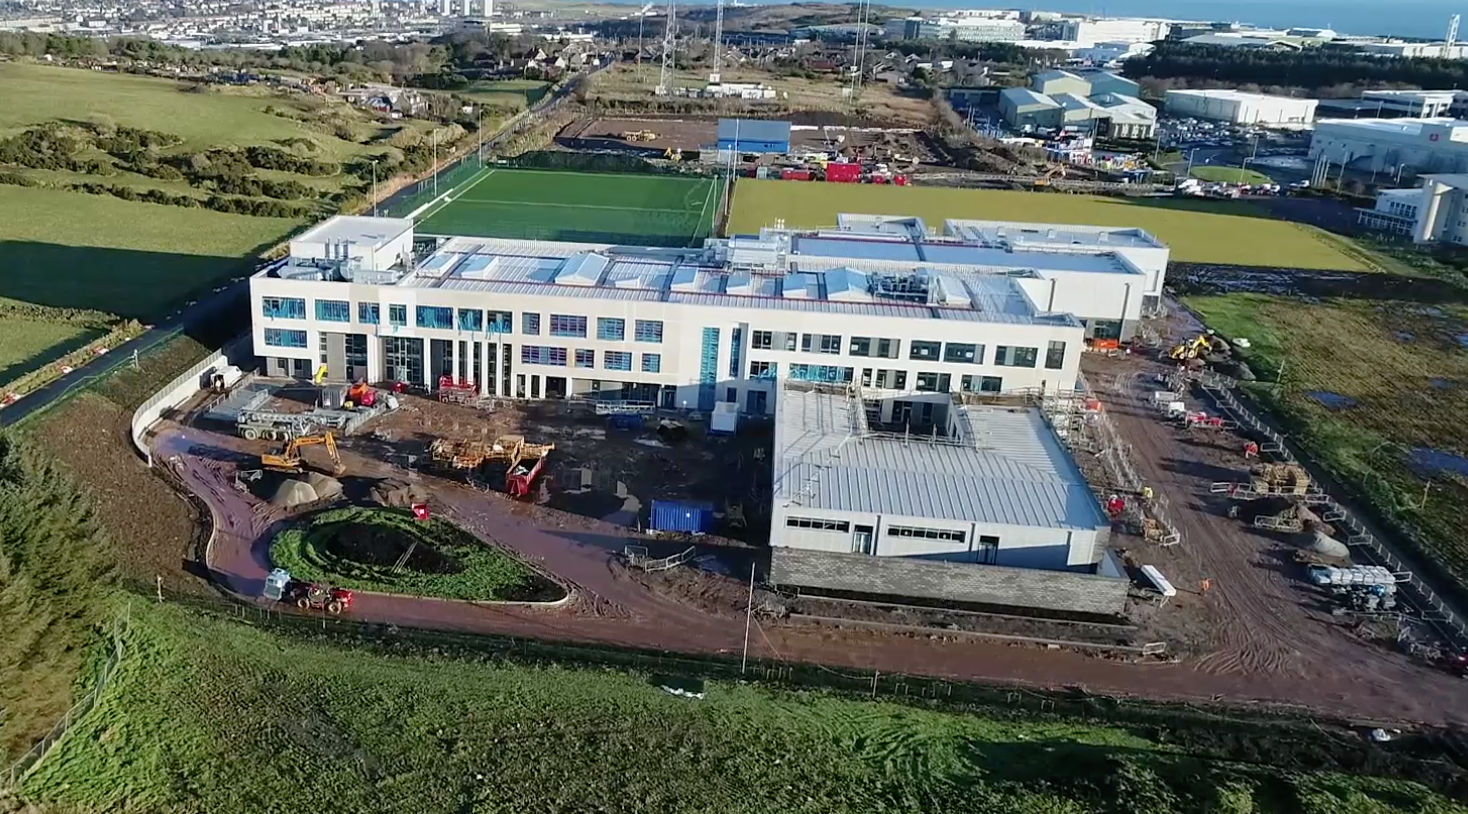 Latest Drone Footage From Balfour Beatty – 15th January 2018